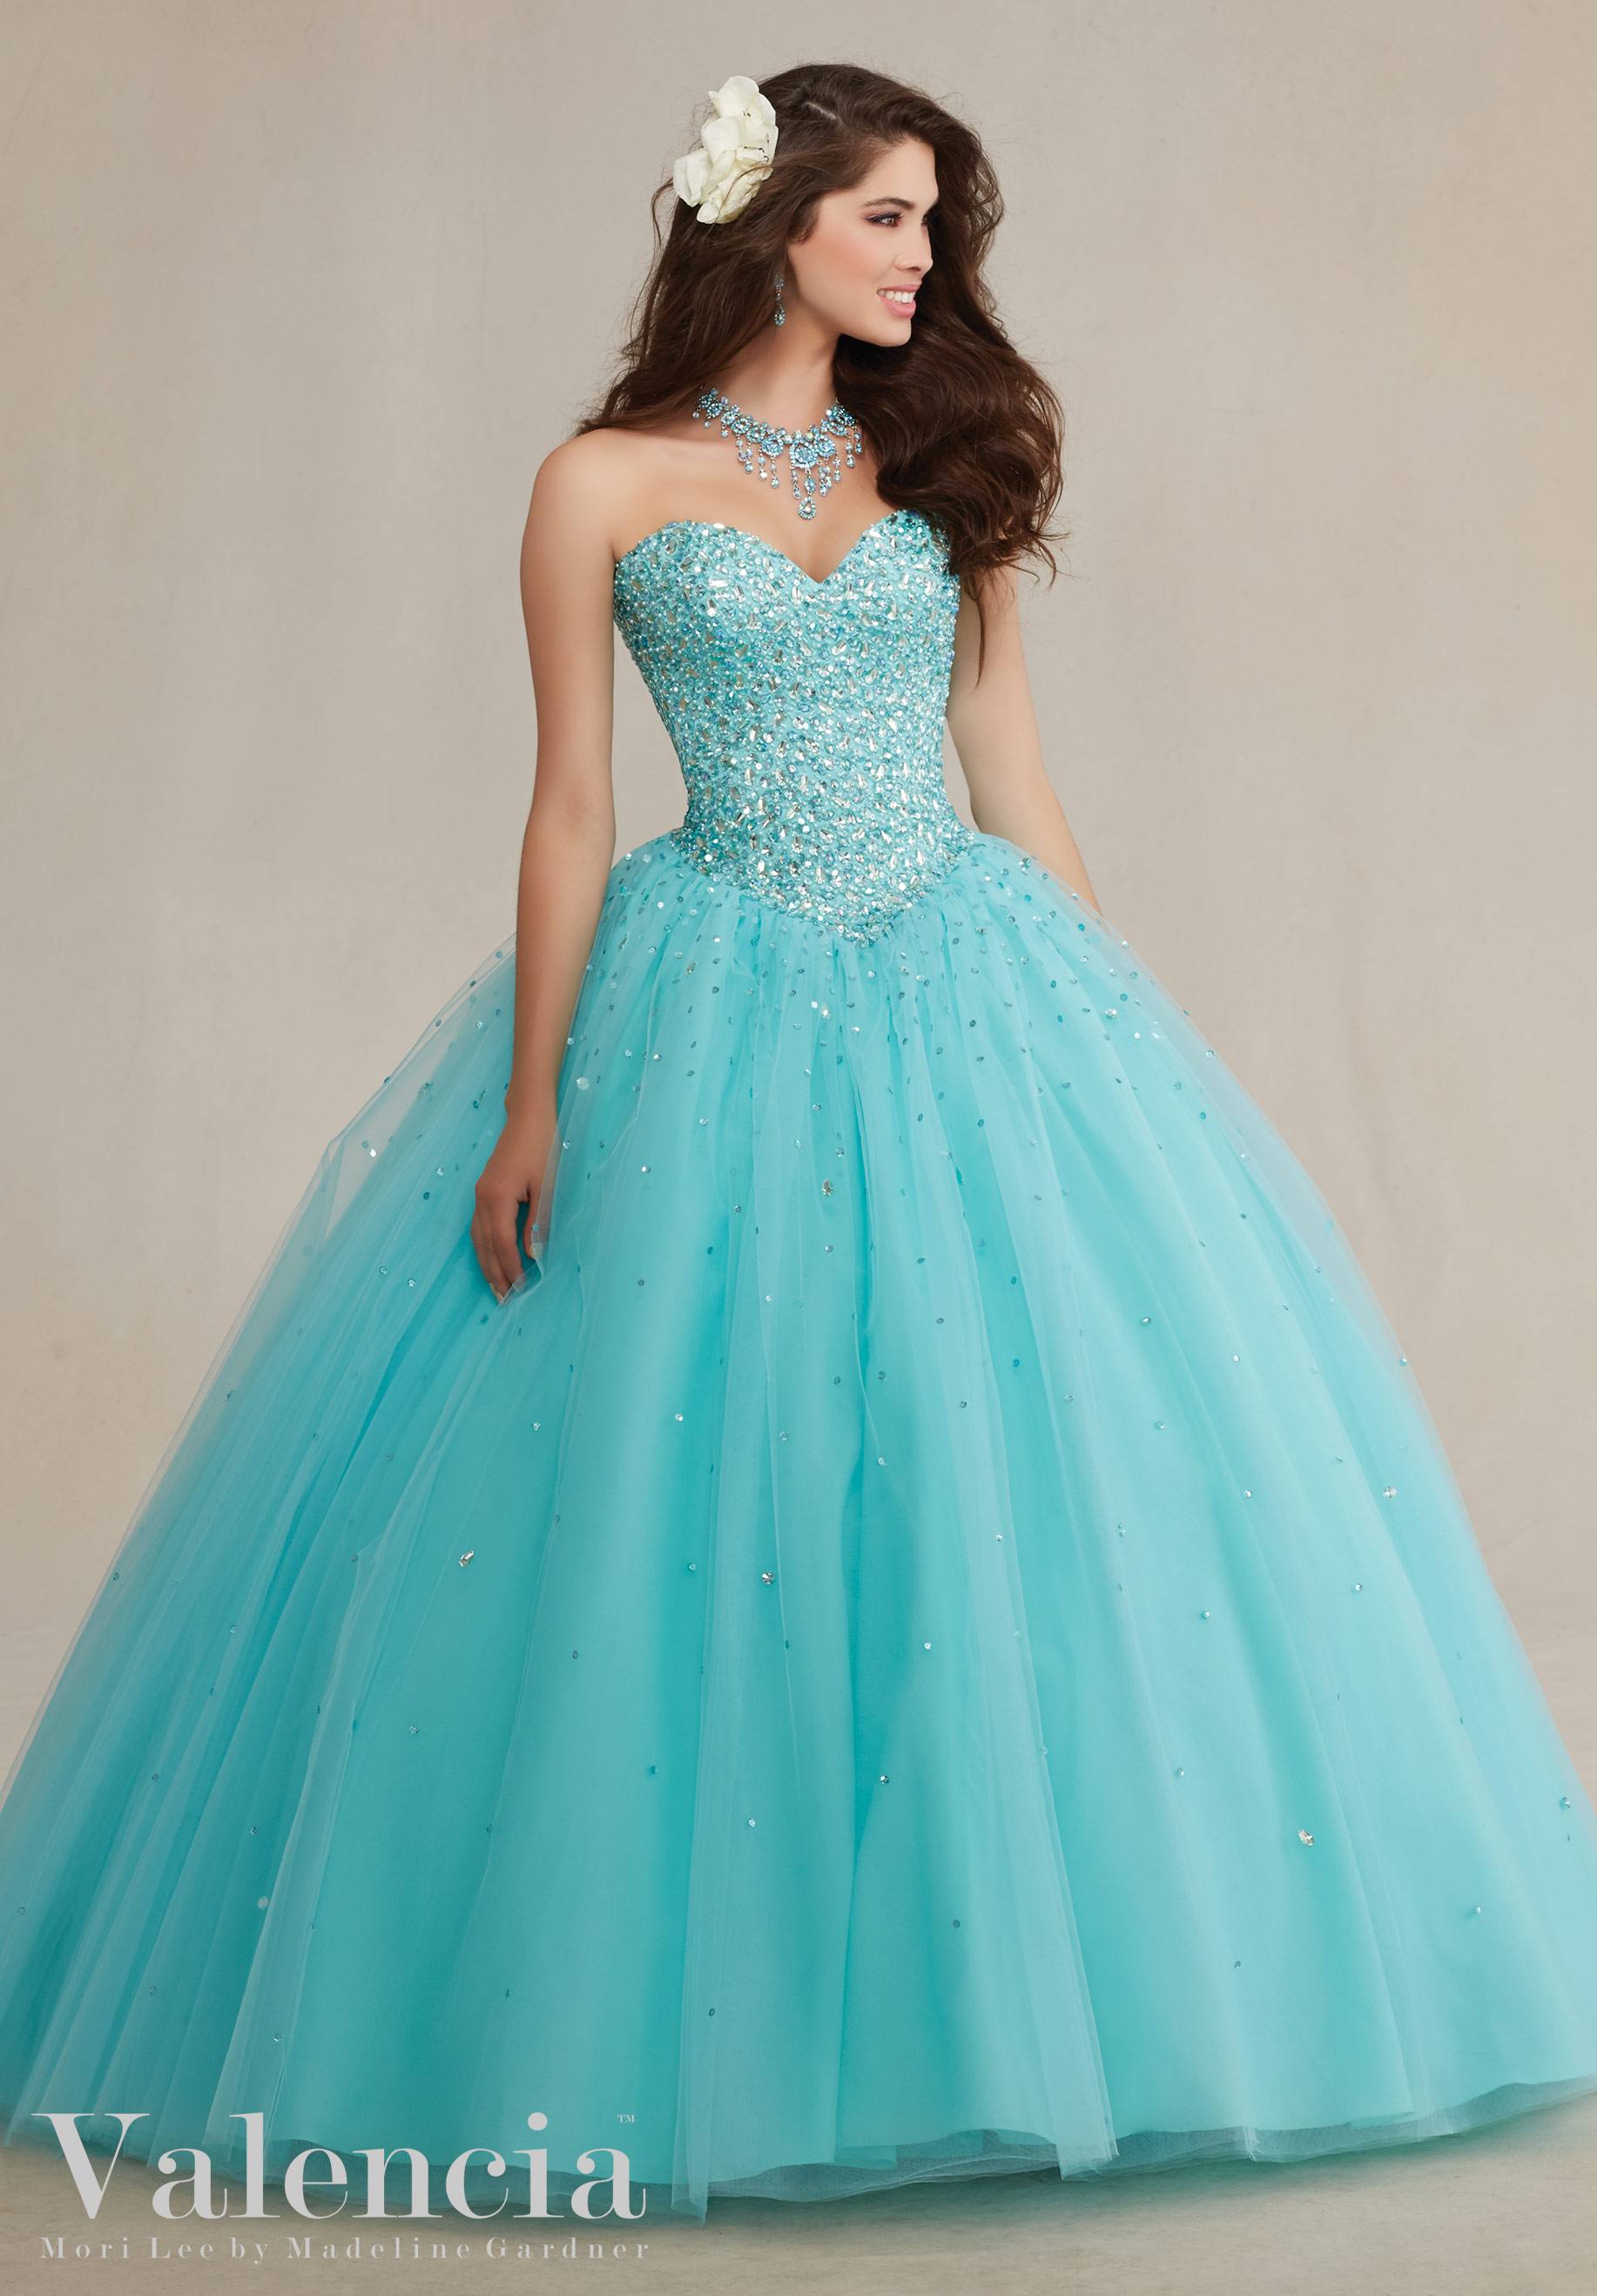 89087 Quinceanera Dresses, Valencia Collection - Dresses by Russo Boston